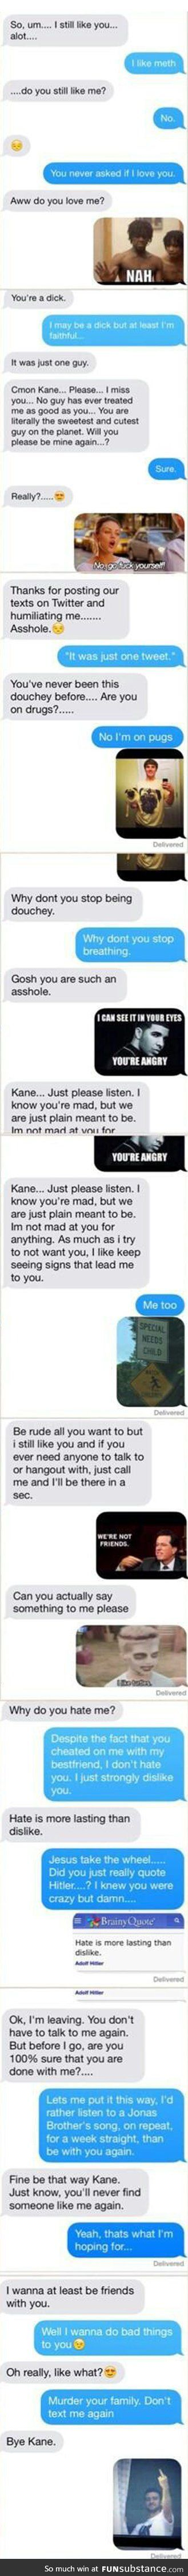 How to deal with a b*tch ex-gf.. this is so cool http://ibeebz.com